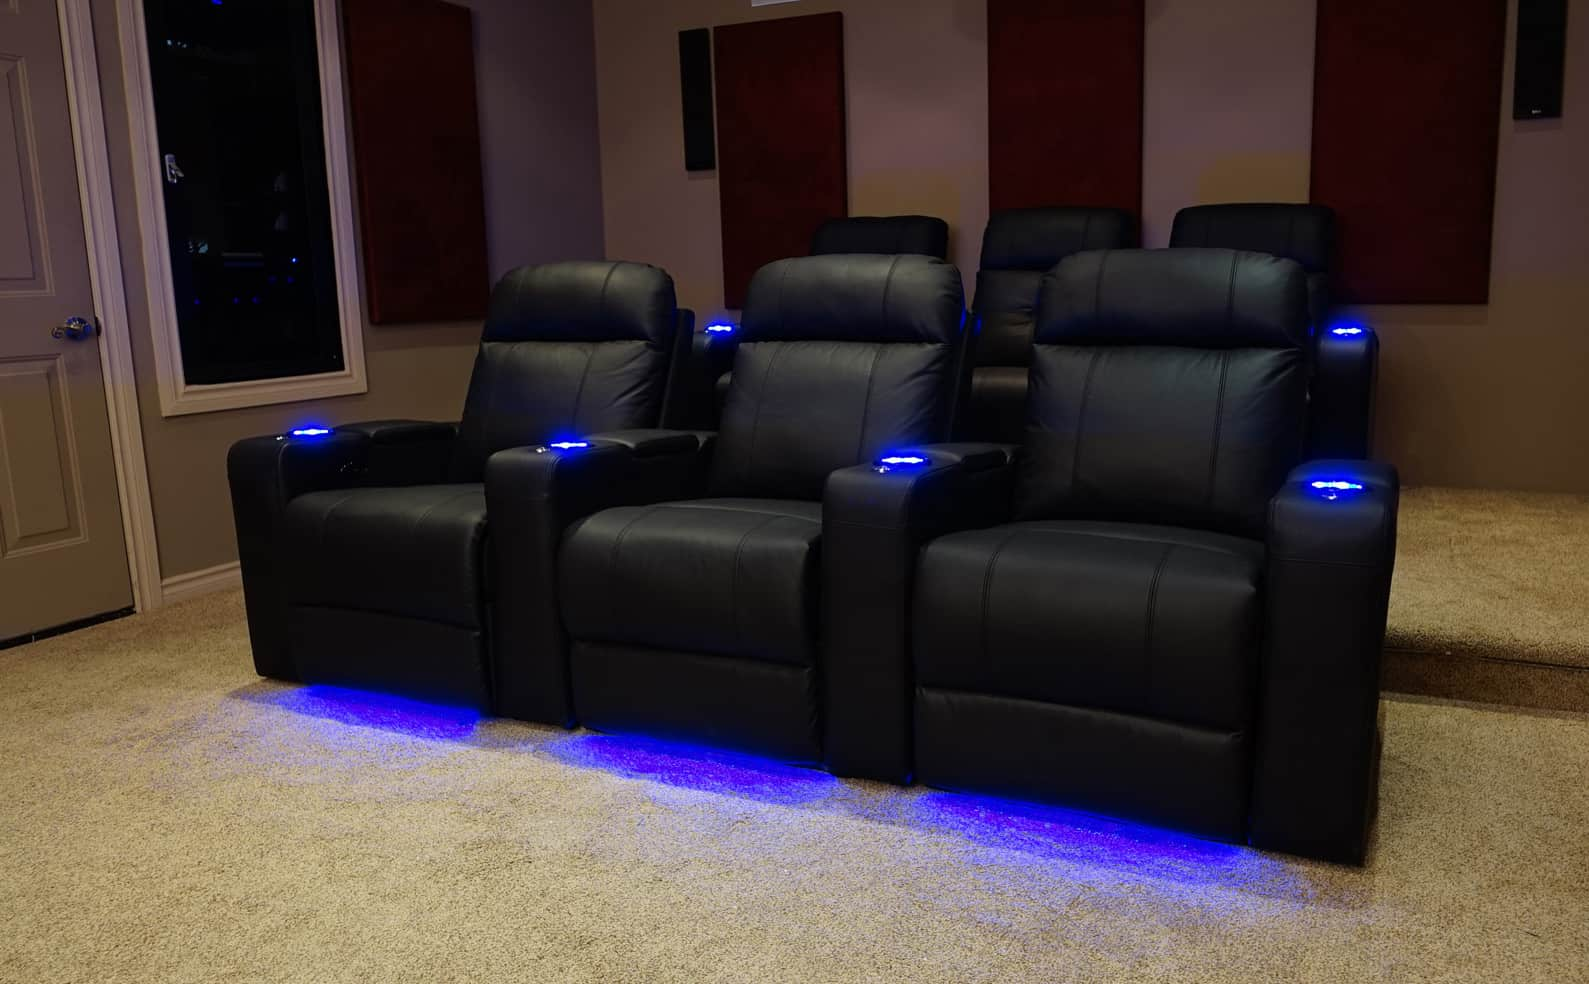 Home theater seating guide | how to buy home theater seating online